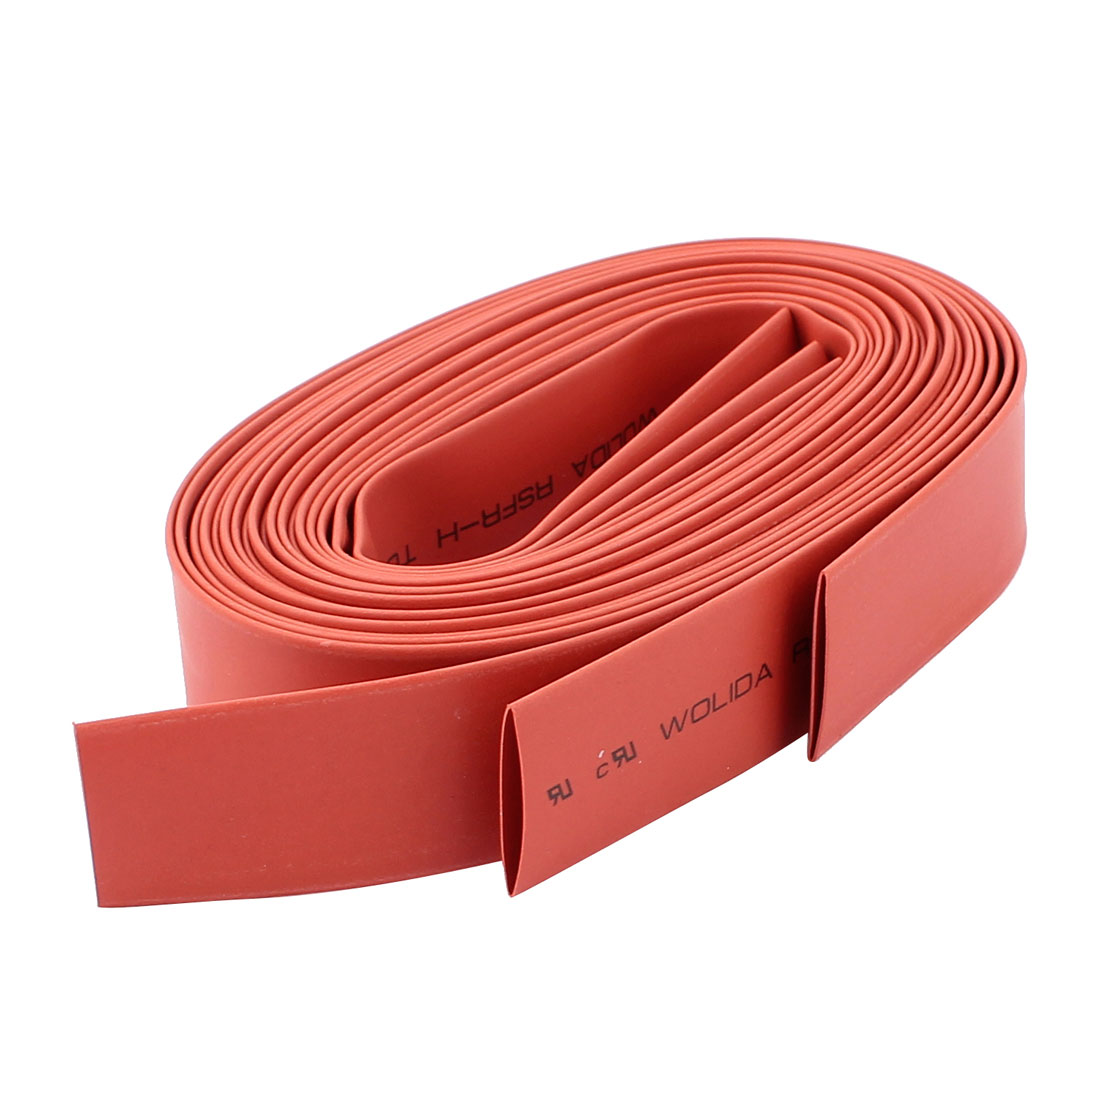 Sleeving Wrap Wire Polyolefin Heat Shrink Tubing Kit 4.9Ft Red 3pcs